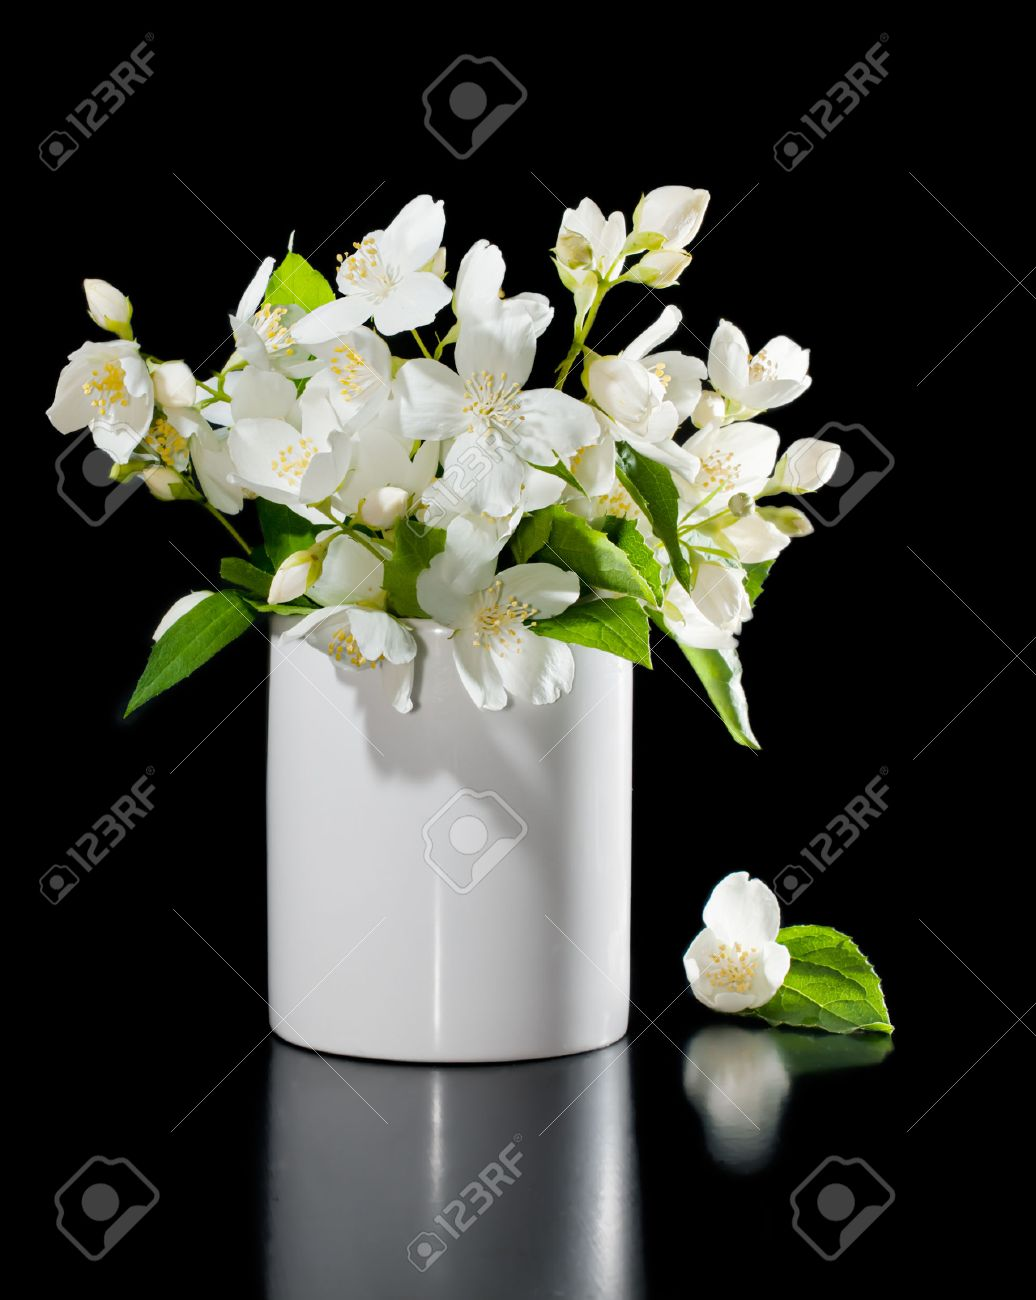 Bunch Of Jasmine Flowers On A Black Background With Reflection Stock